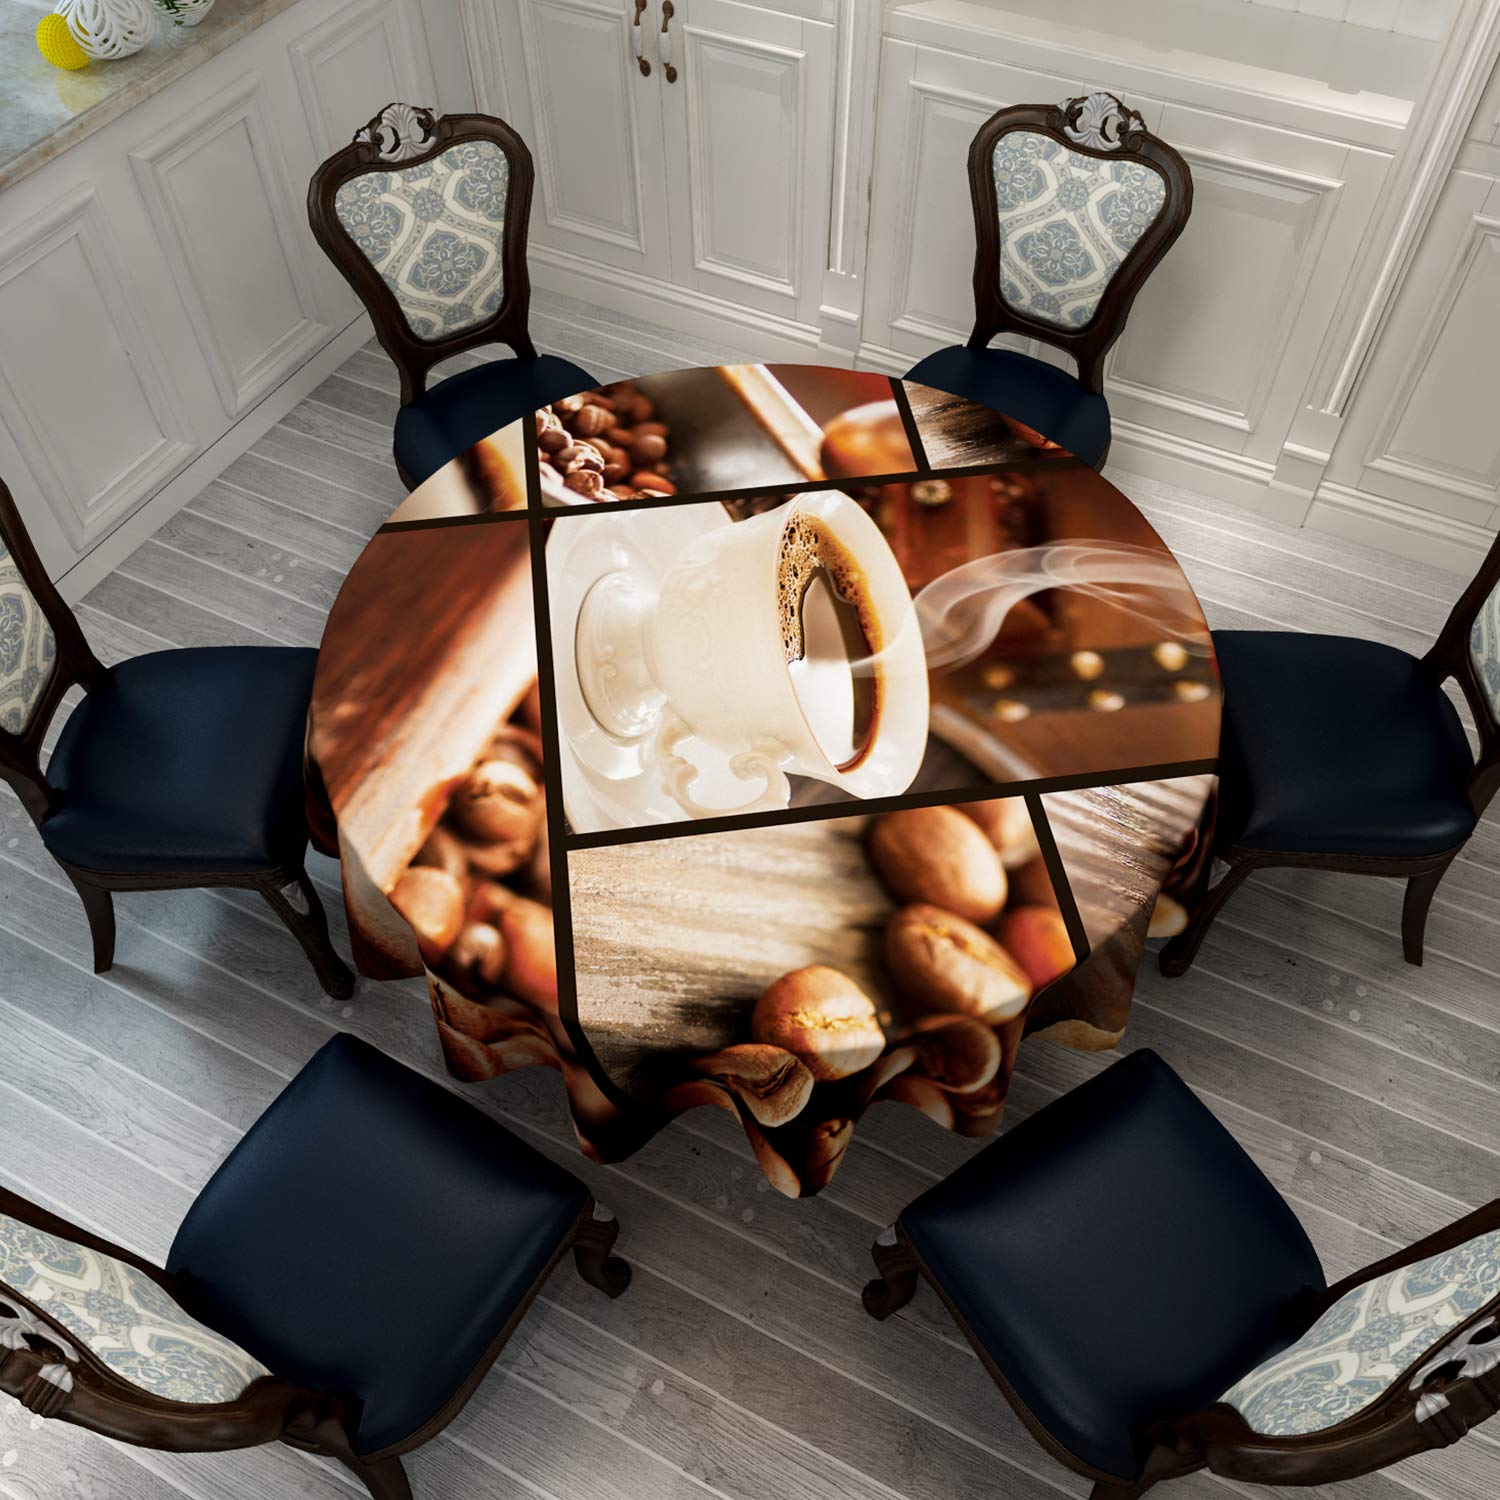 VVA Round Tablecloth -Collage with Coffee Cups, Sugar Cubes, Coffee Beans, Roaster and Grinder - Round Table Cover for Dining Rooms and Kitchens, Indoor and Outdoor Events - 60 Inch, Brown